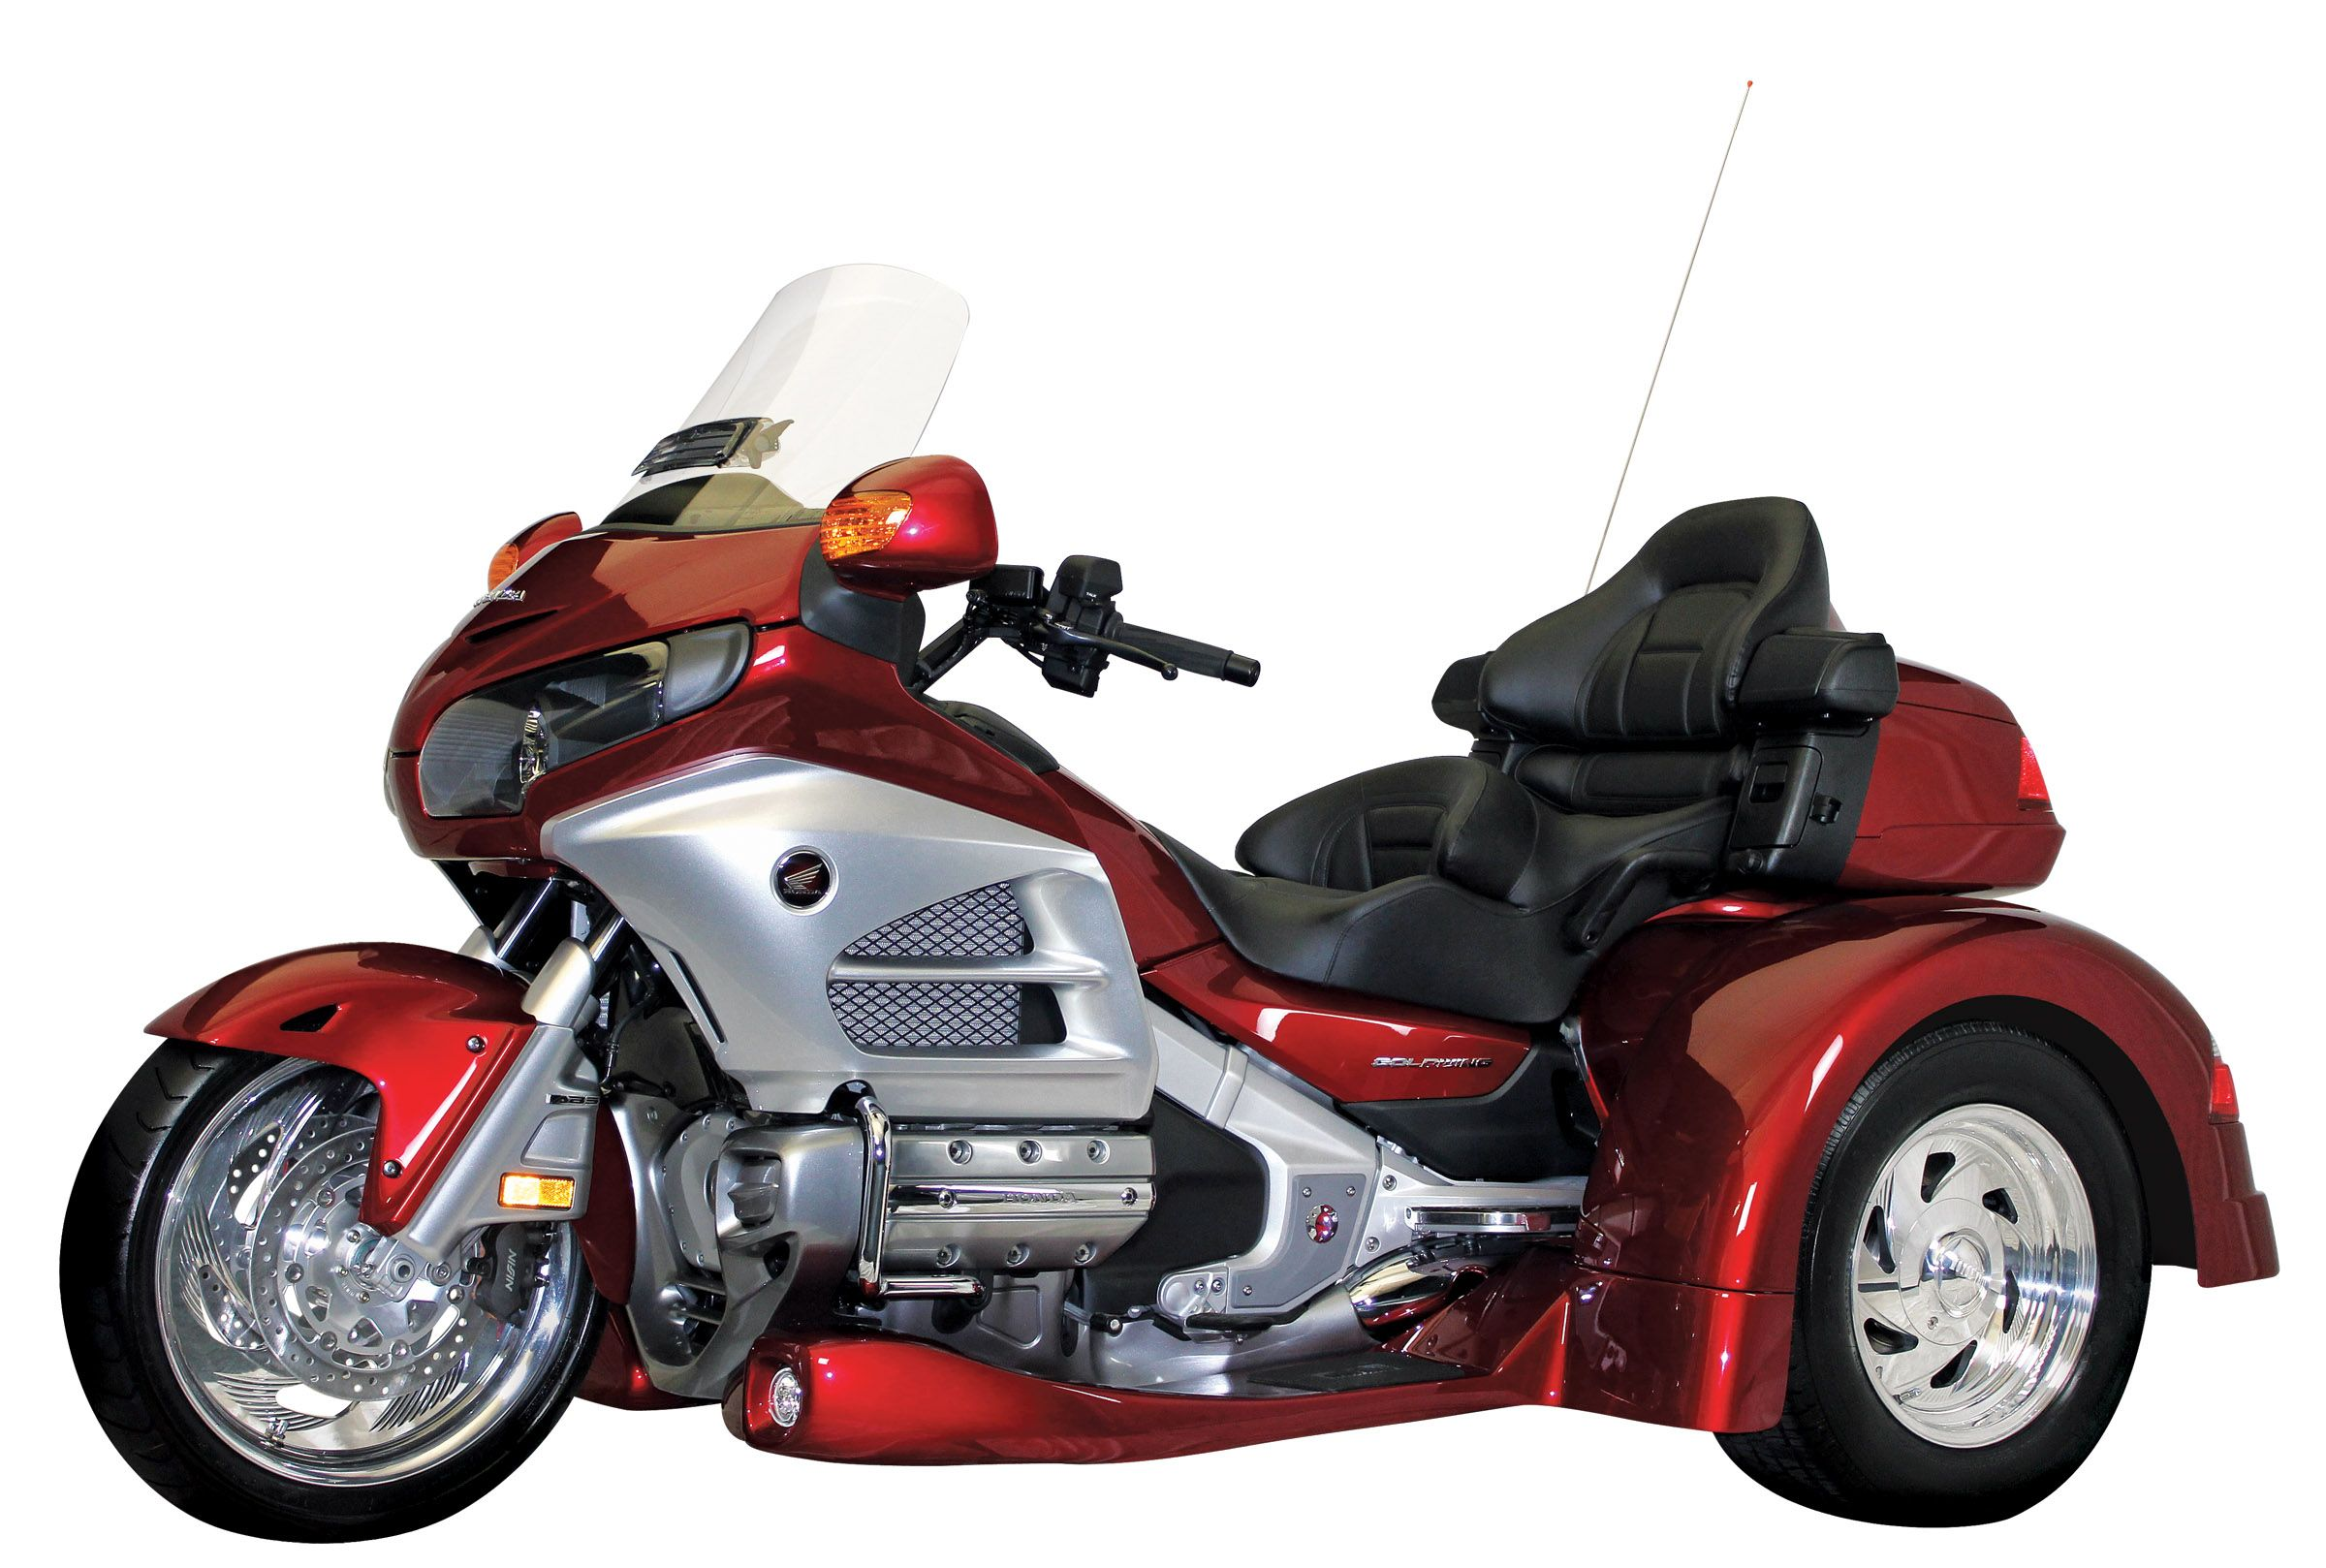 3 wheel honda motorcycles | 2012 Gold Wing Gets 3 Wheels From Motor